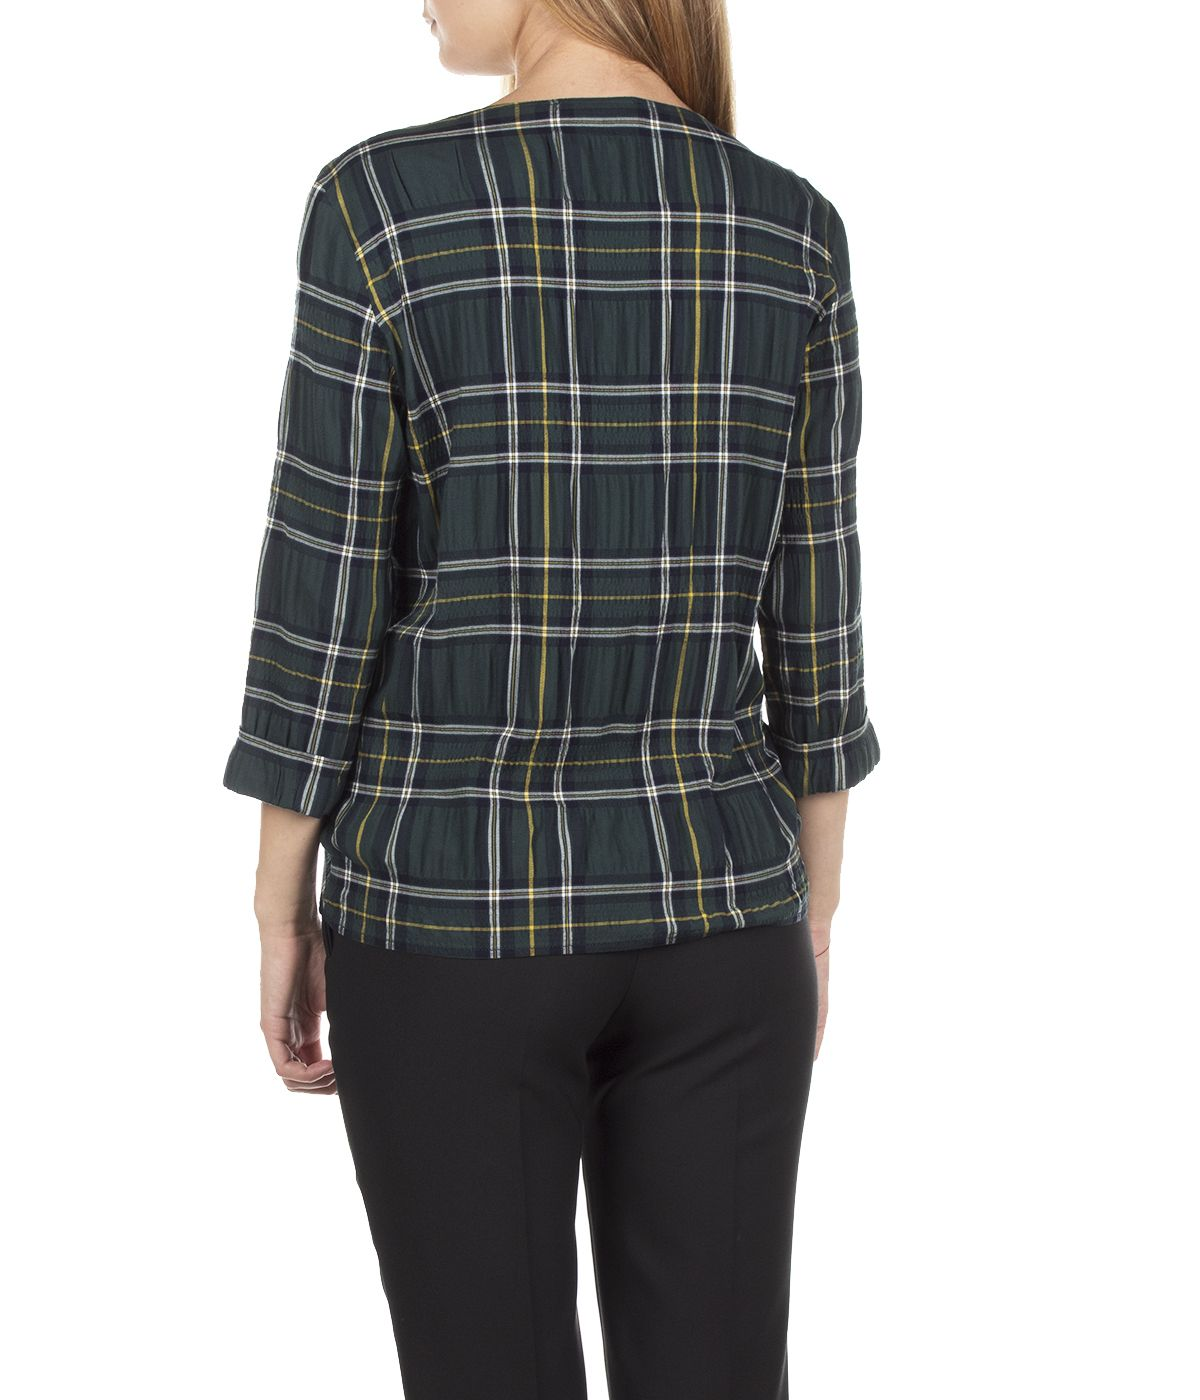 CHECKED BLOUSE FROM VISCOSE WITH ¾ SLEEVES AND TIED DETAIL 3